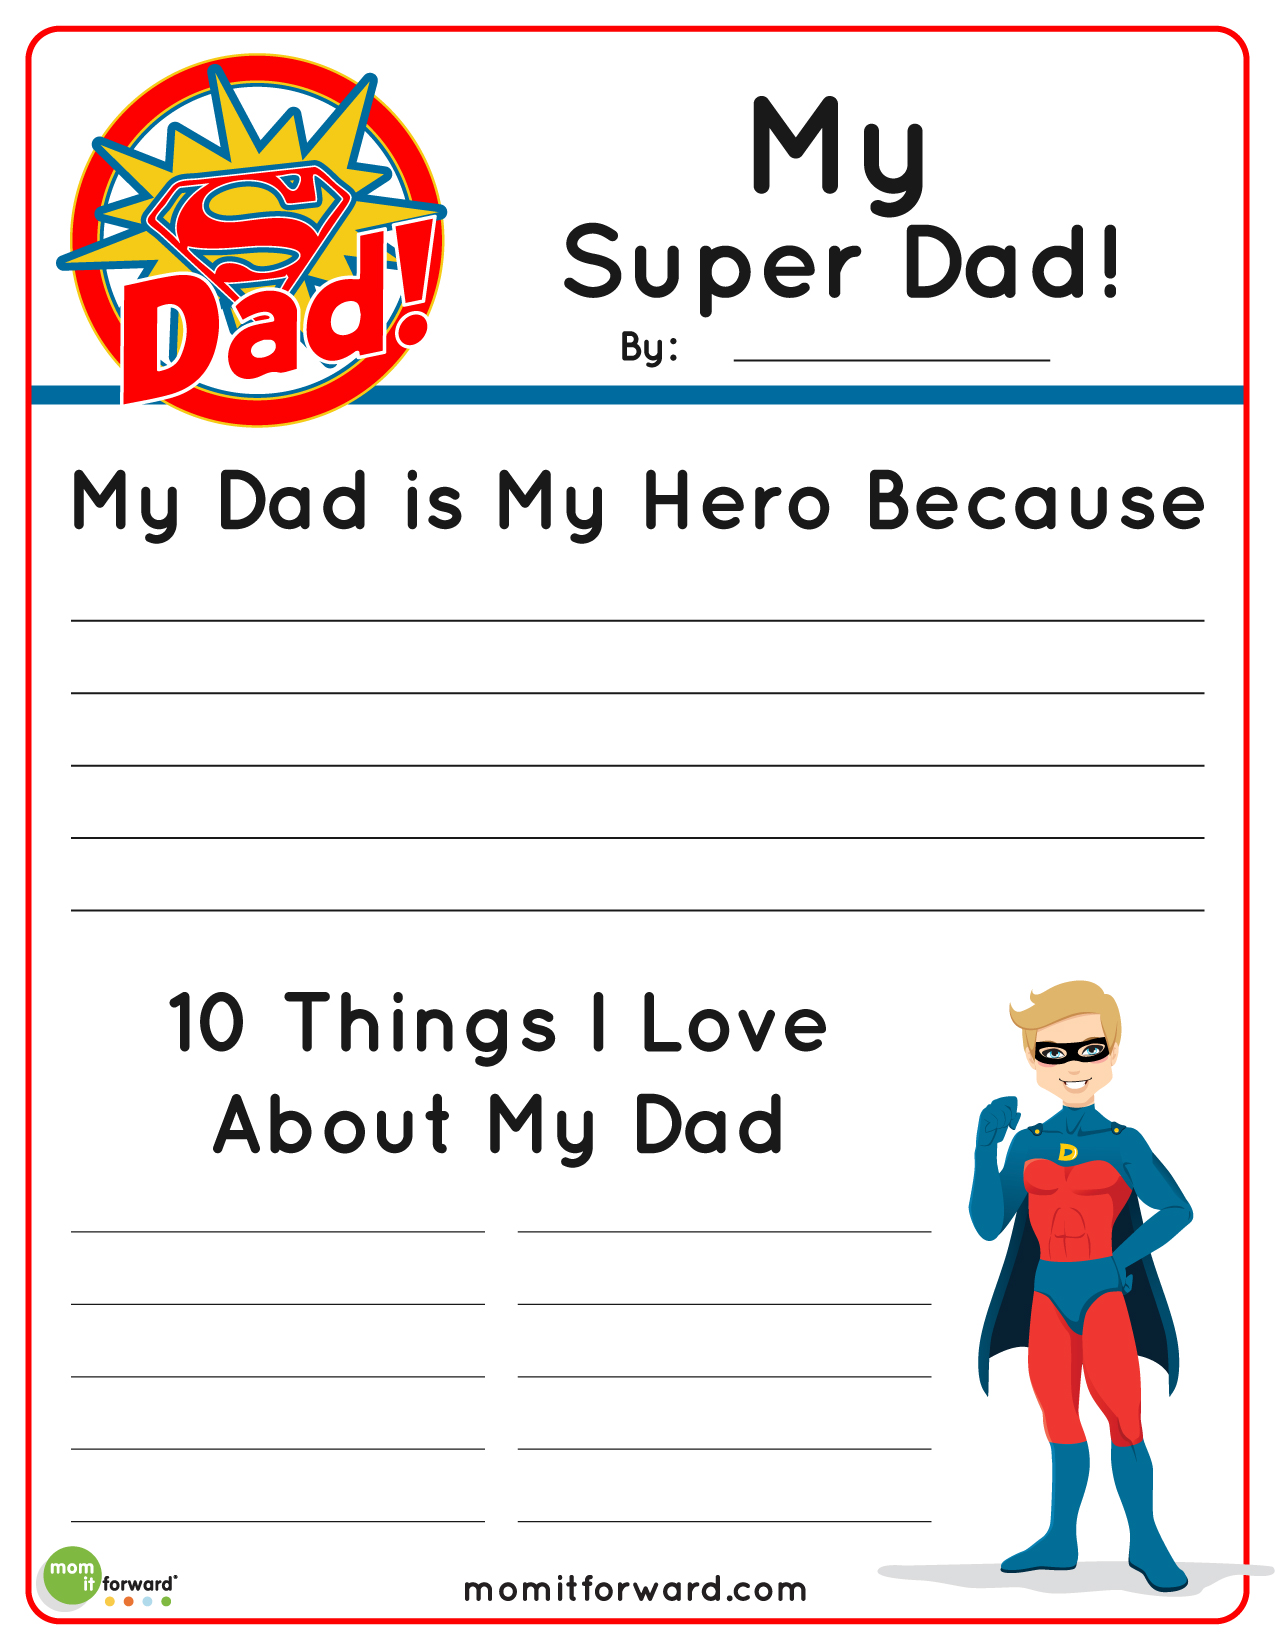 My Super Dad Father S Day Printablemom It Forward